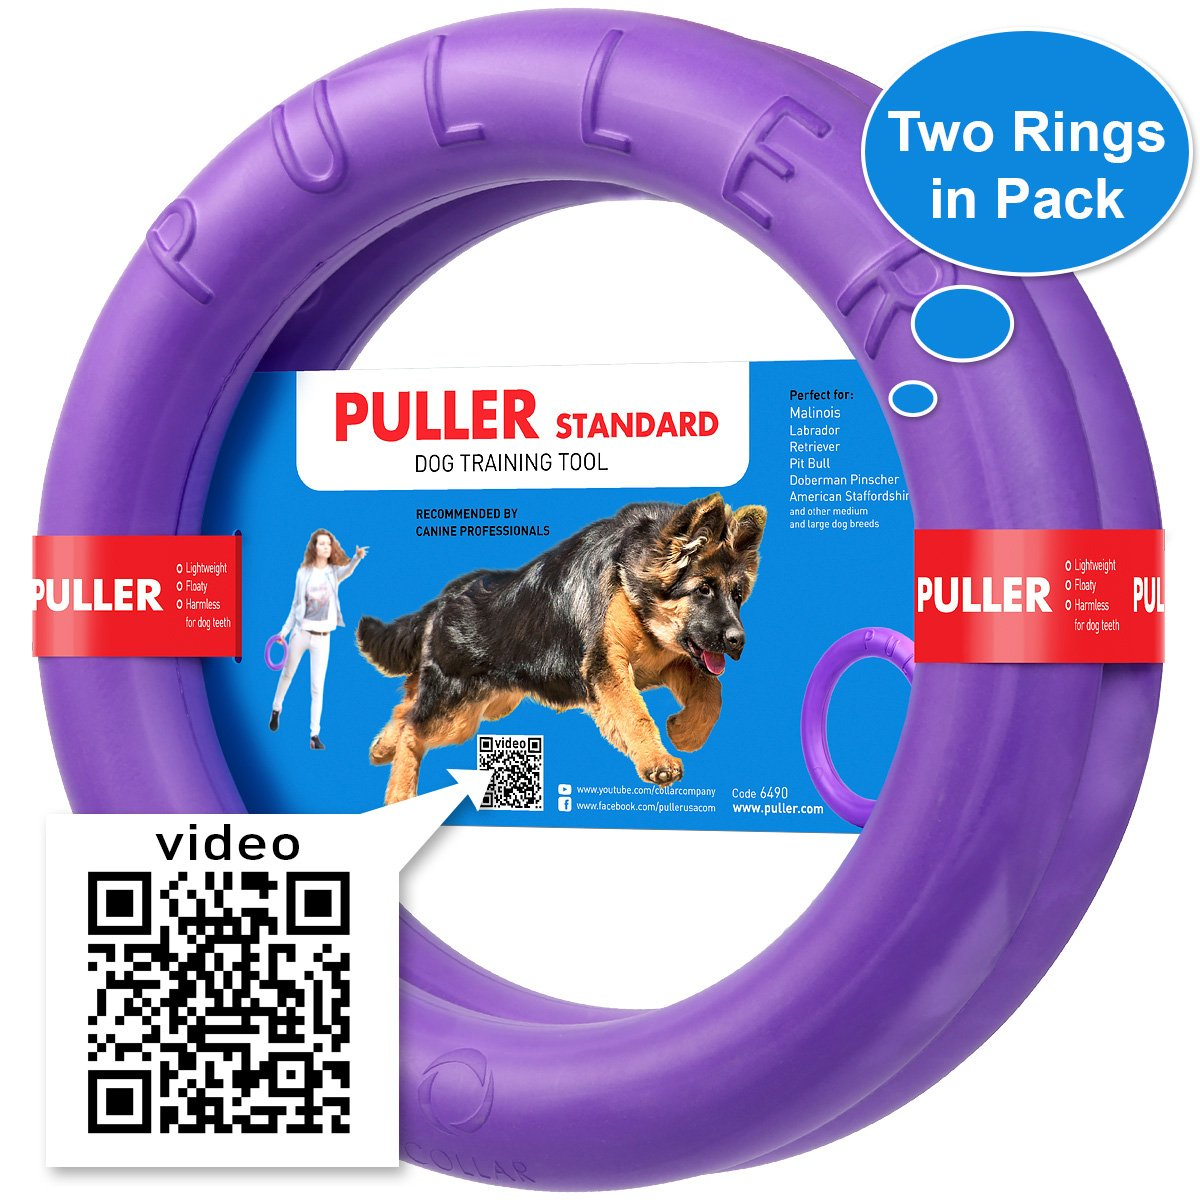 New Version 2018 Dog Training Tools - K9 Training Equipment and Bonus - Large Medium K9 Dog Training tool - Real physical and emotional load your dog - Set 2 Rings by Puller Plus - Size 11.2 inches by COLLAR